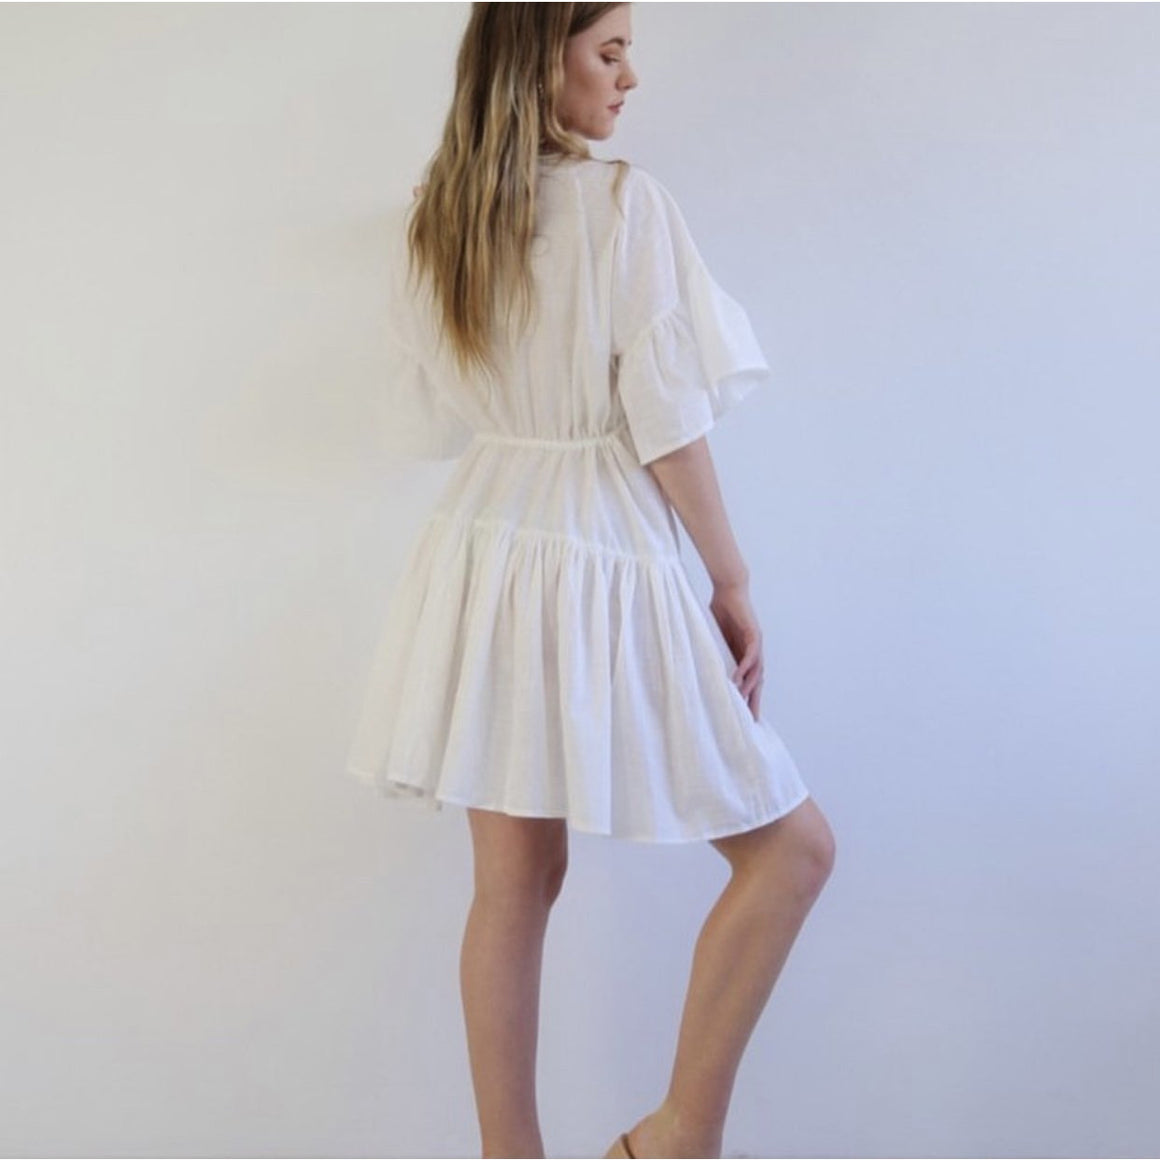 ANGEL TIERED SHIRT DRESS